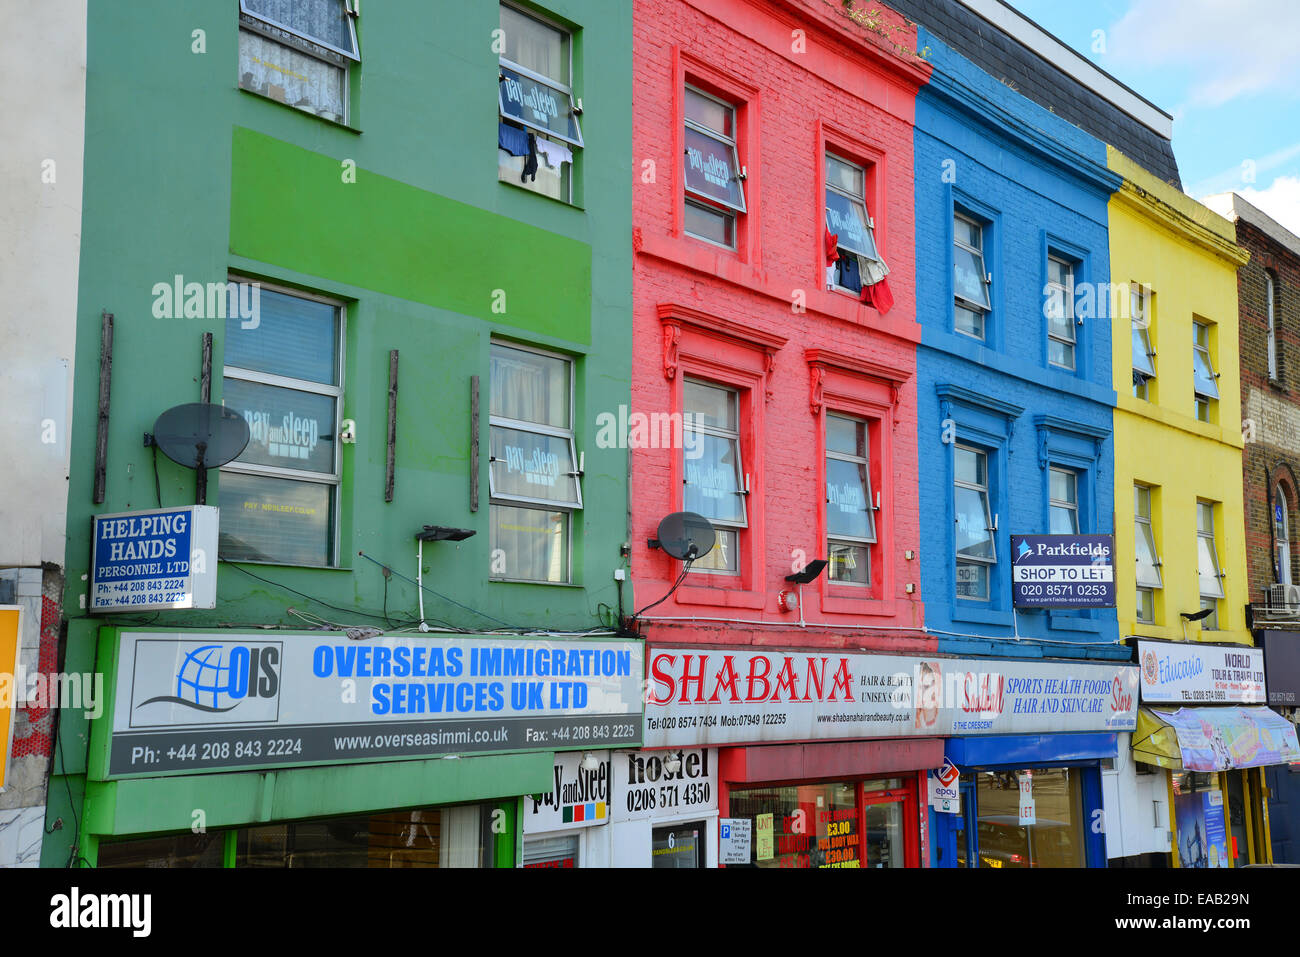 Colourful shopfronts, The Crescent, Southall, London Borough of Ealing, Greater London, England, United Kingdom - Stock Image